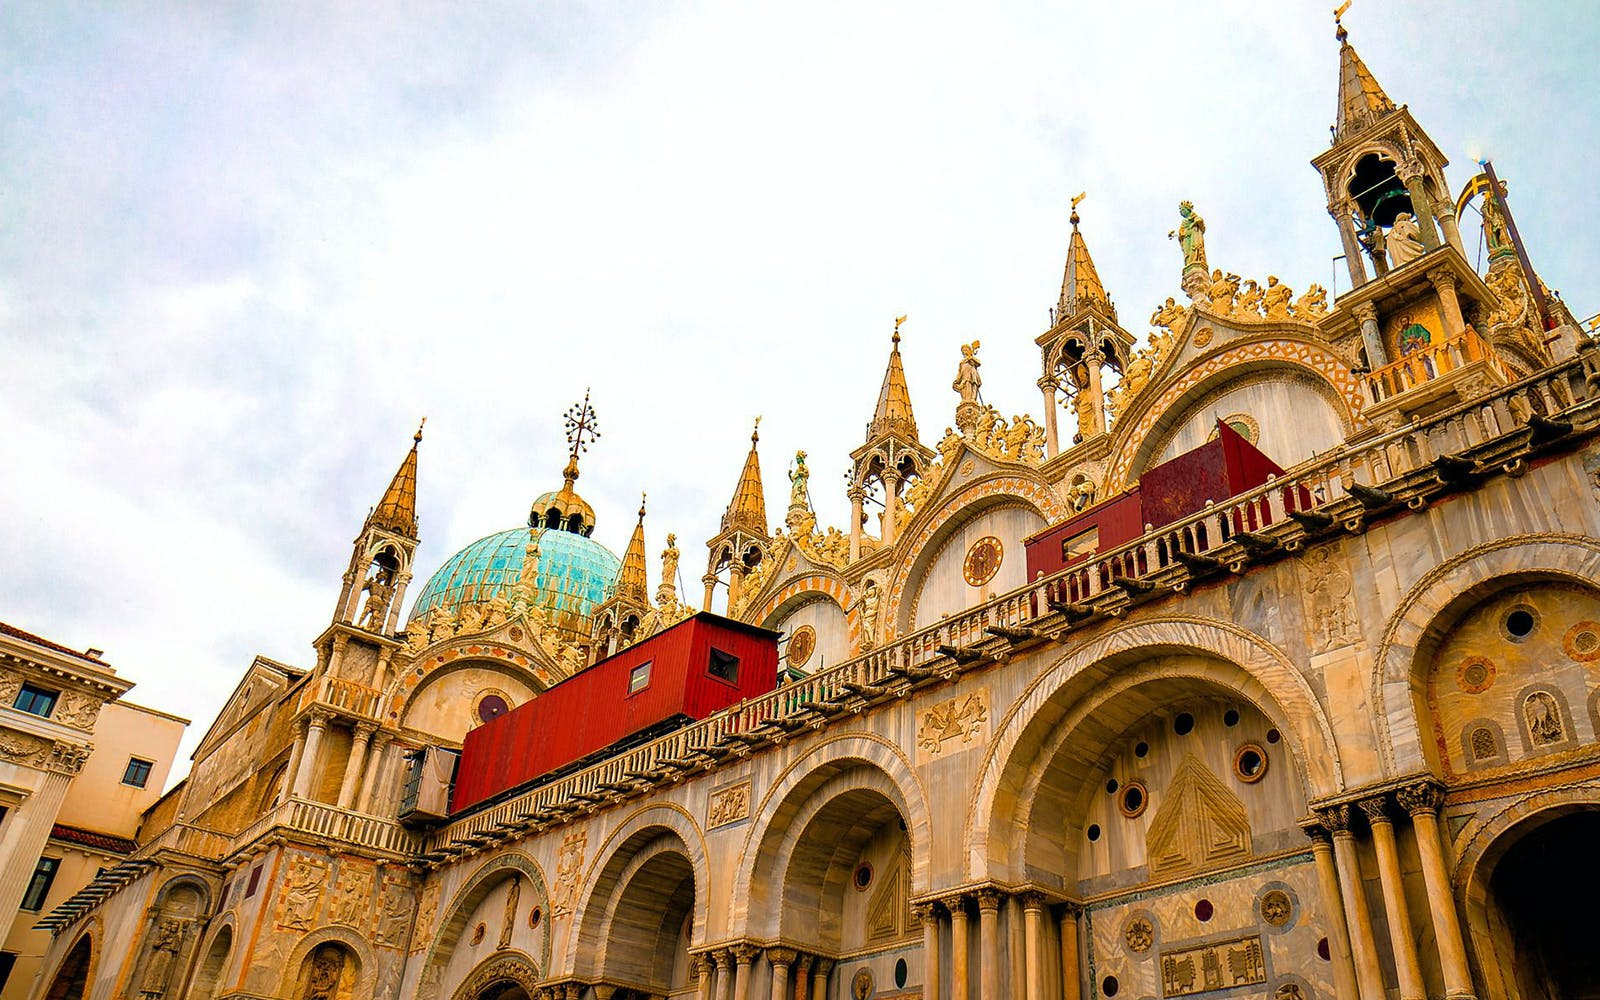 Venice in a Day - St Mark's Basilica + Doge's Palace + Gondola Ride